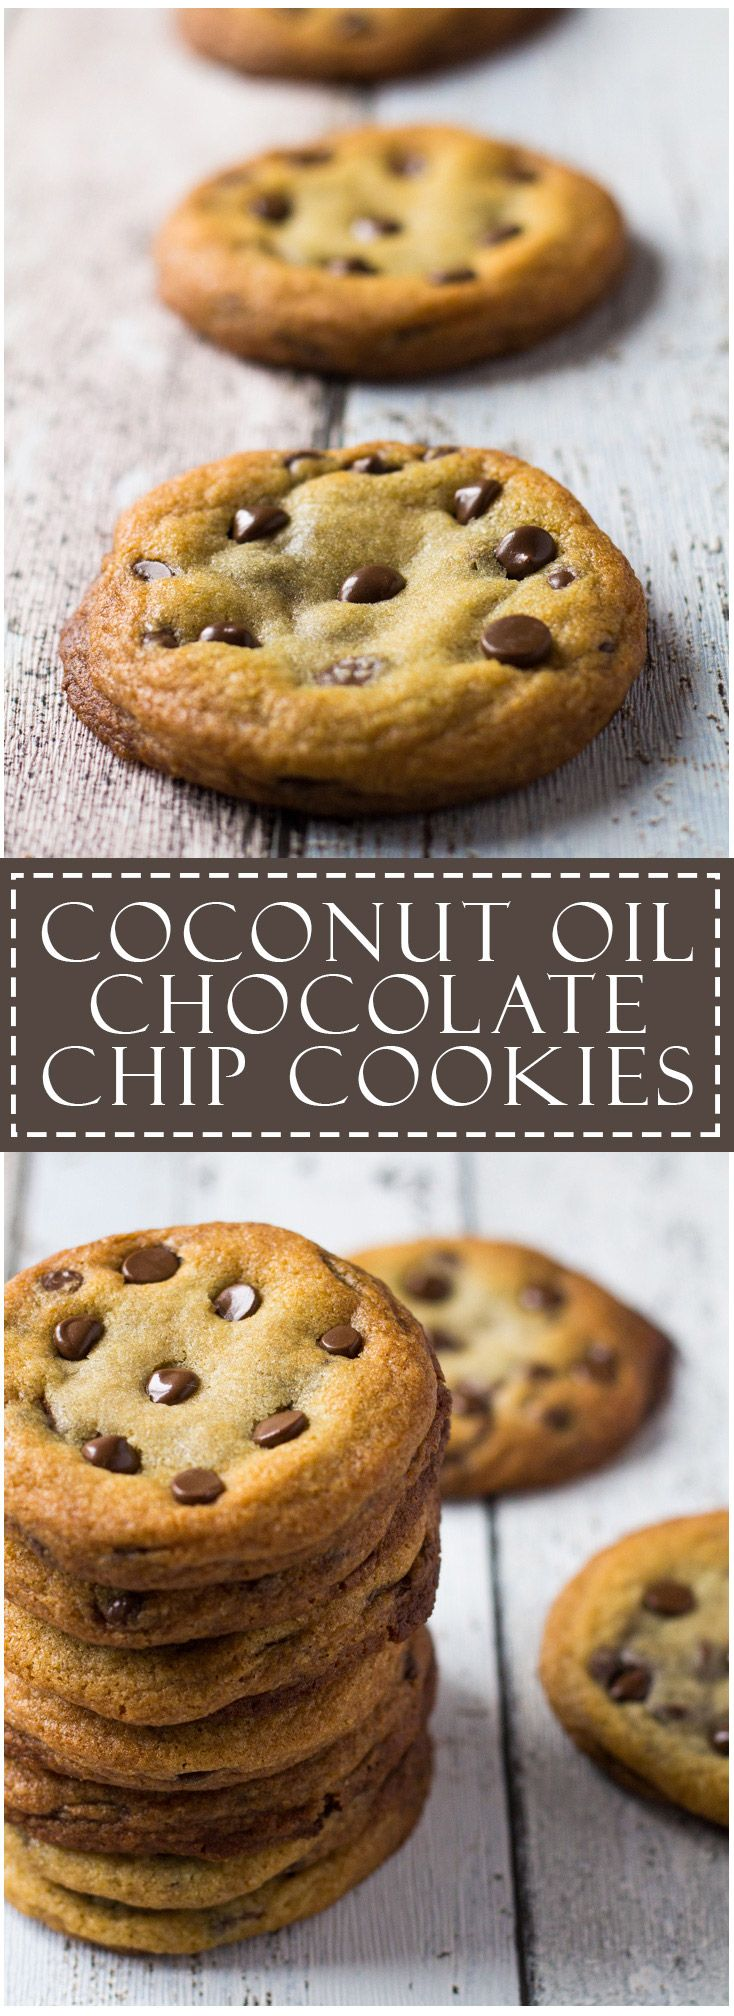 Coconut Oil Chocolate Chip Cookies | Marsha's Baking Addiction